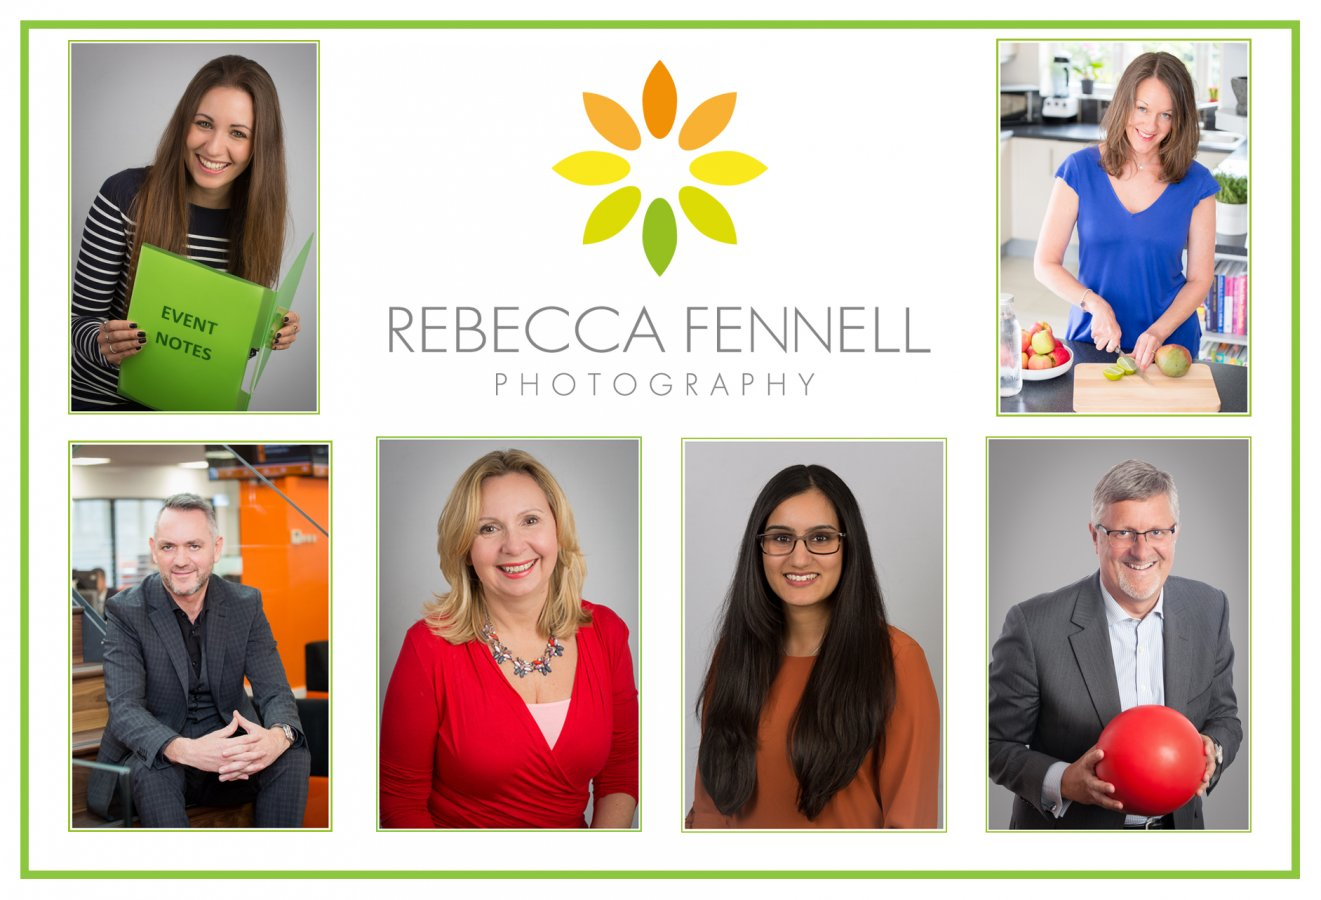 COrporate photos with Rebecca Fennell Photography